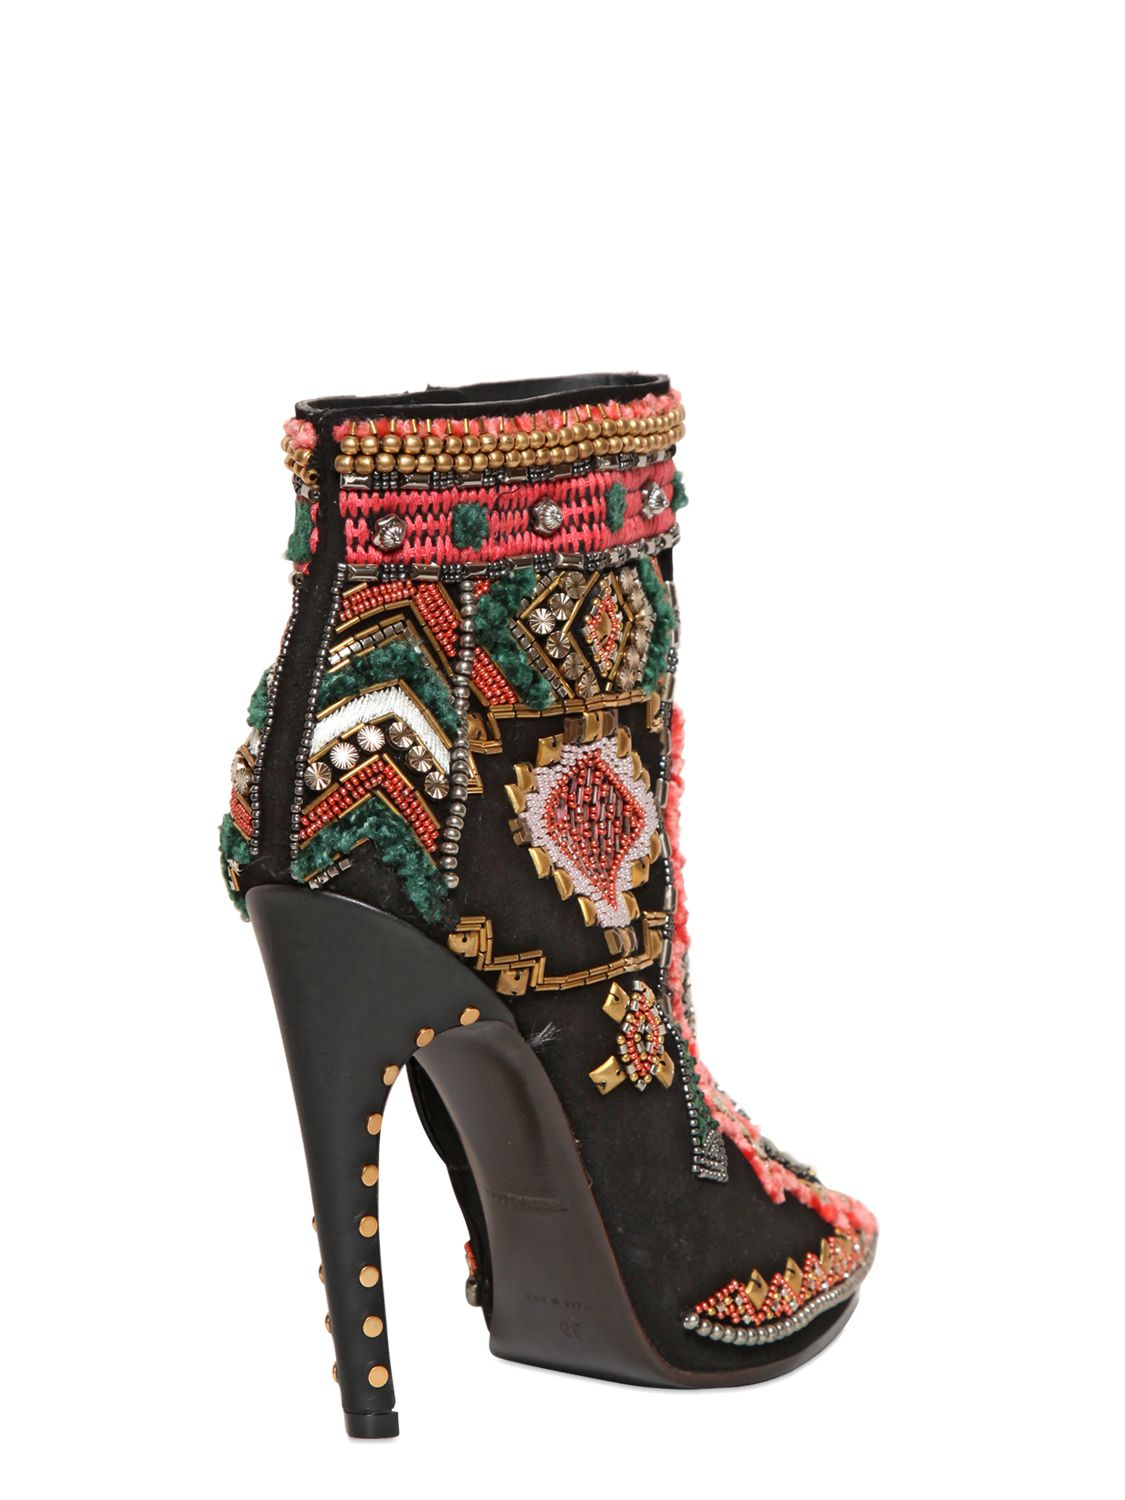 Lyst Emilio Pucci 115mm Suede Embroidered Ankle Boots